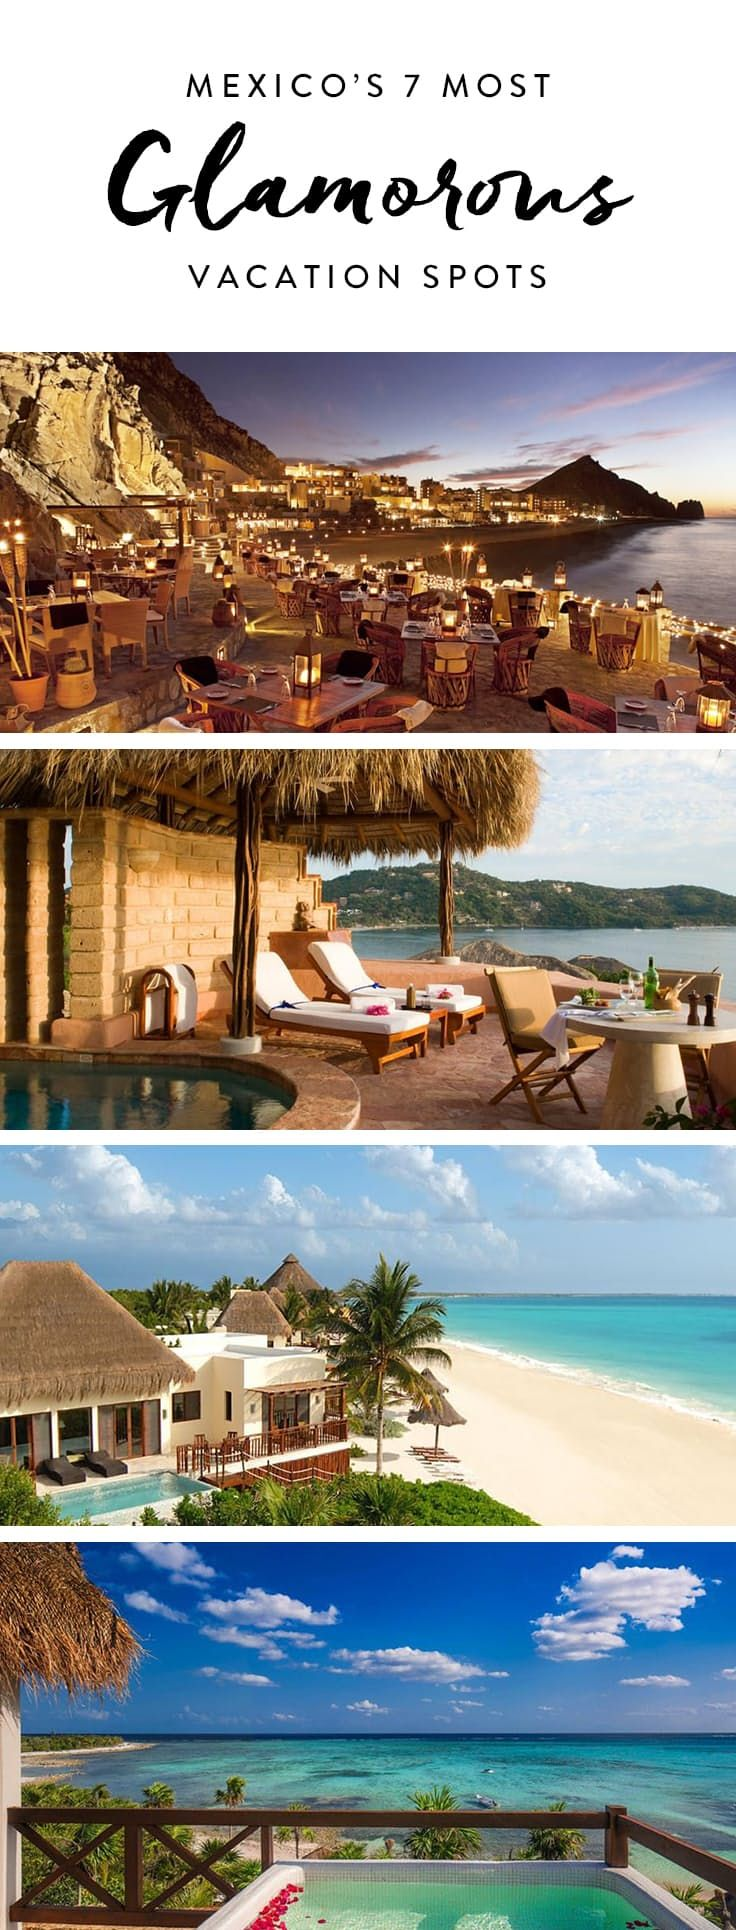 Mexico's 7 Most Glamorous Vacation Spots via @PureWow